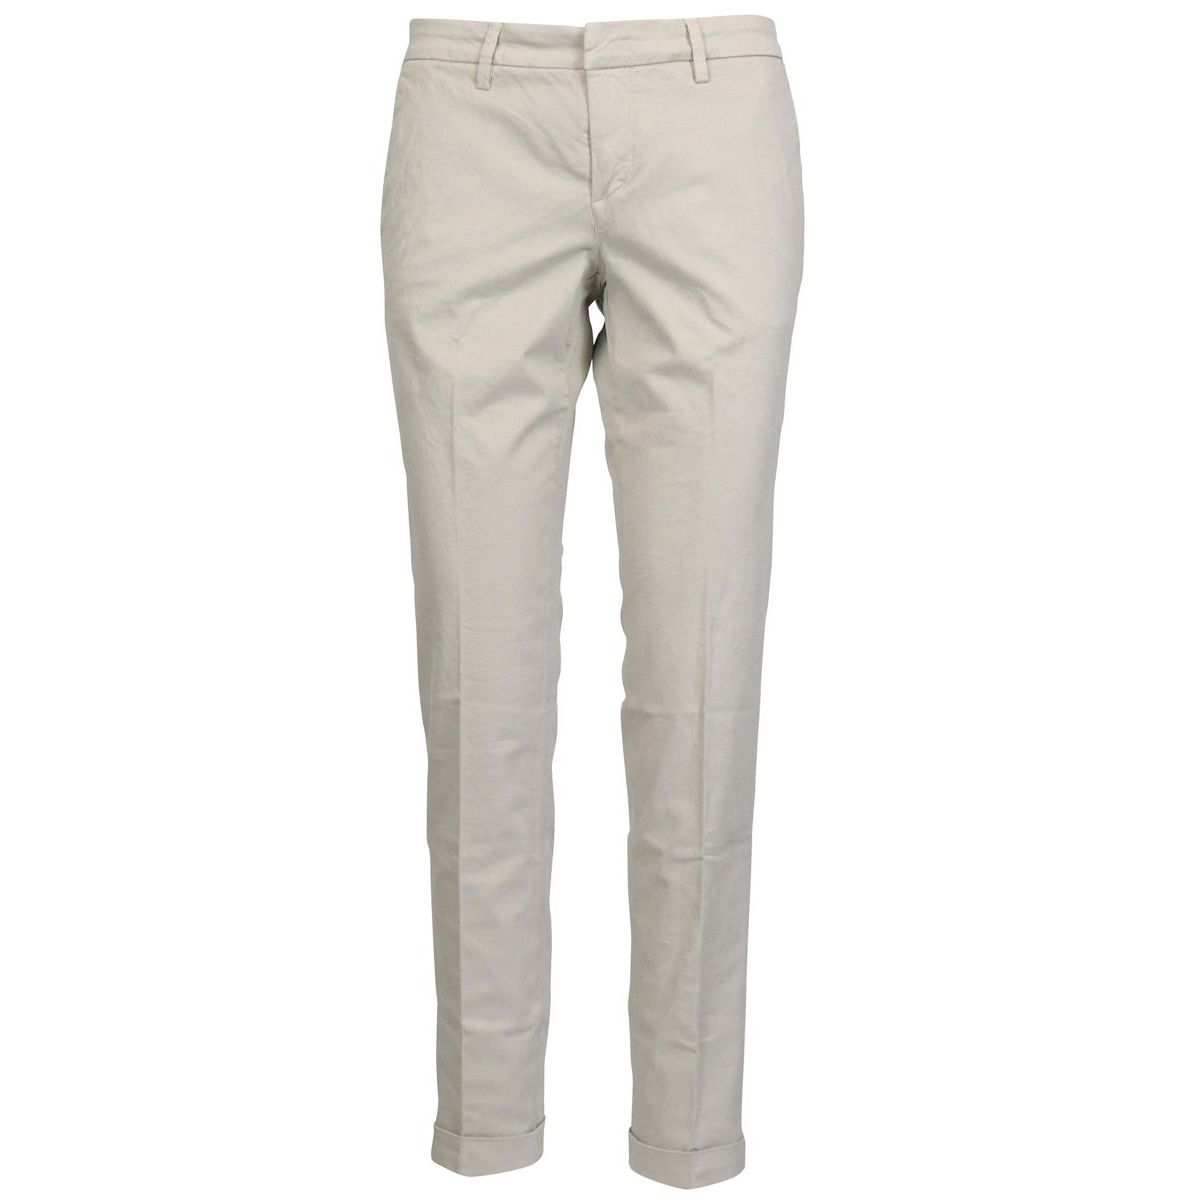 Stretch cotton chinos trousers Beige Fay